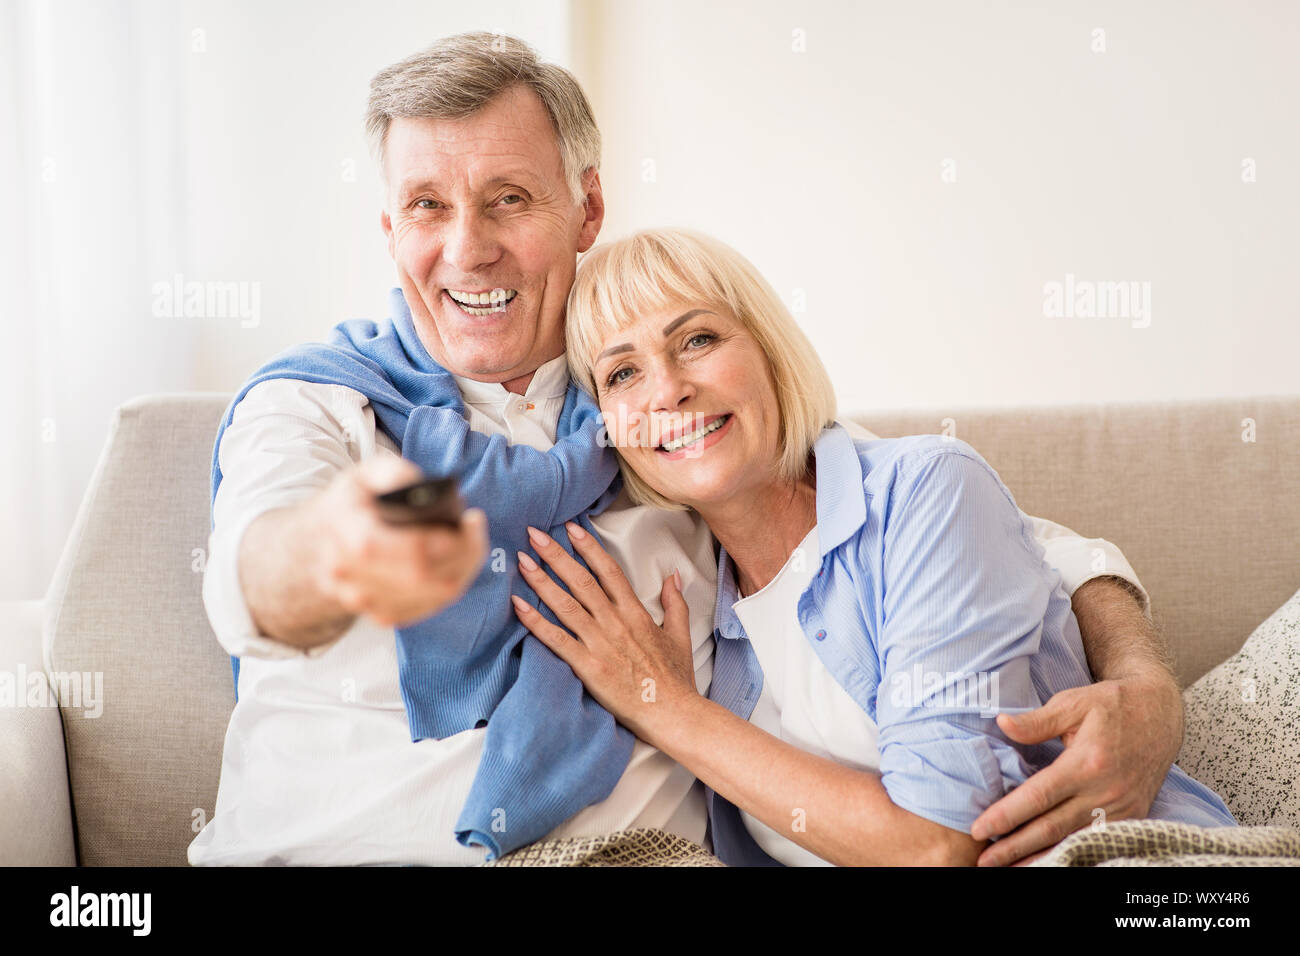 60's Plus Mature Dating Online Website Without Pay